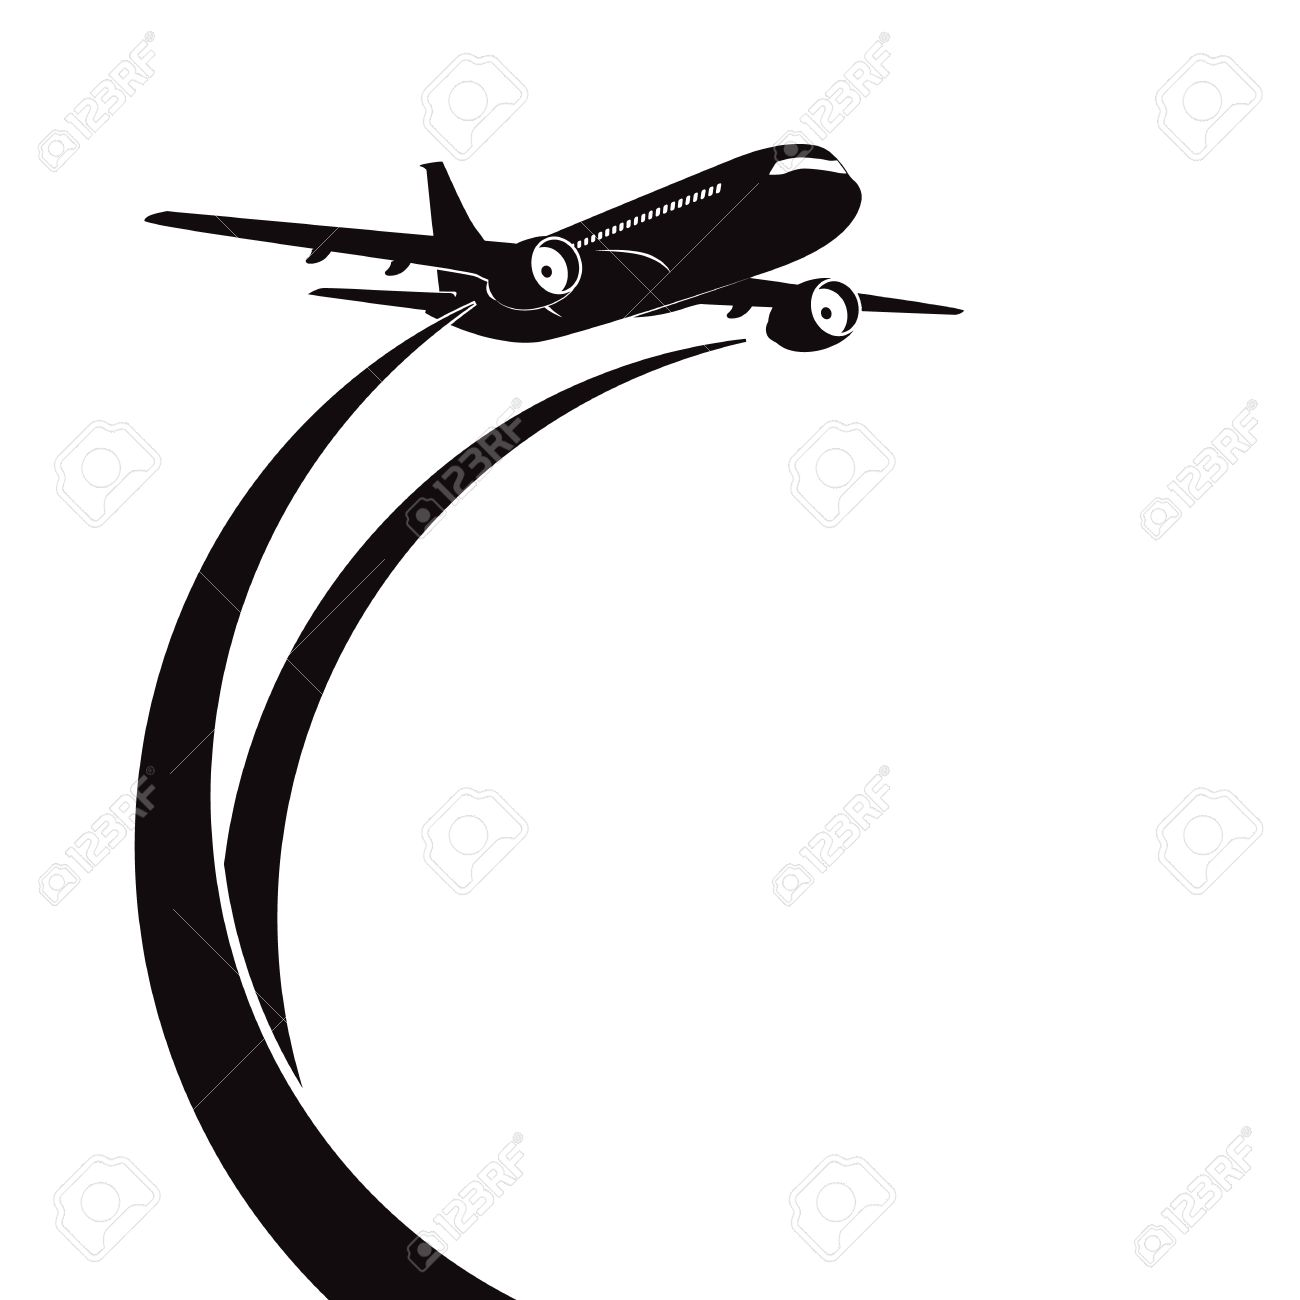 1300x1300 Airplane Royalty Free Cliparts, Vectors, And Stock Illustration